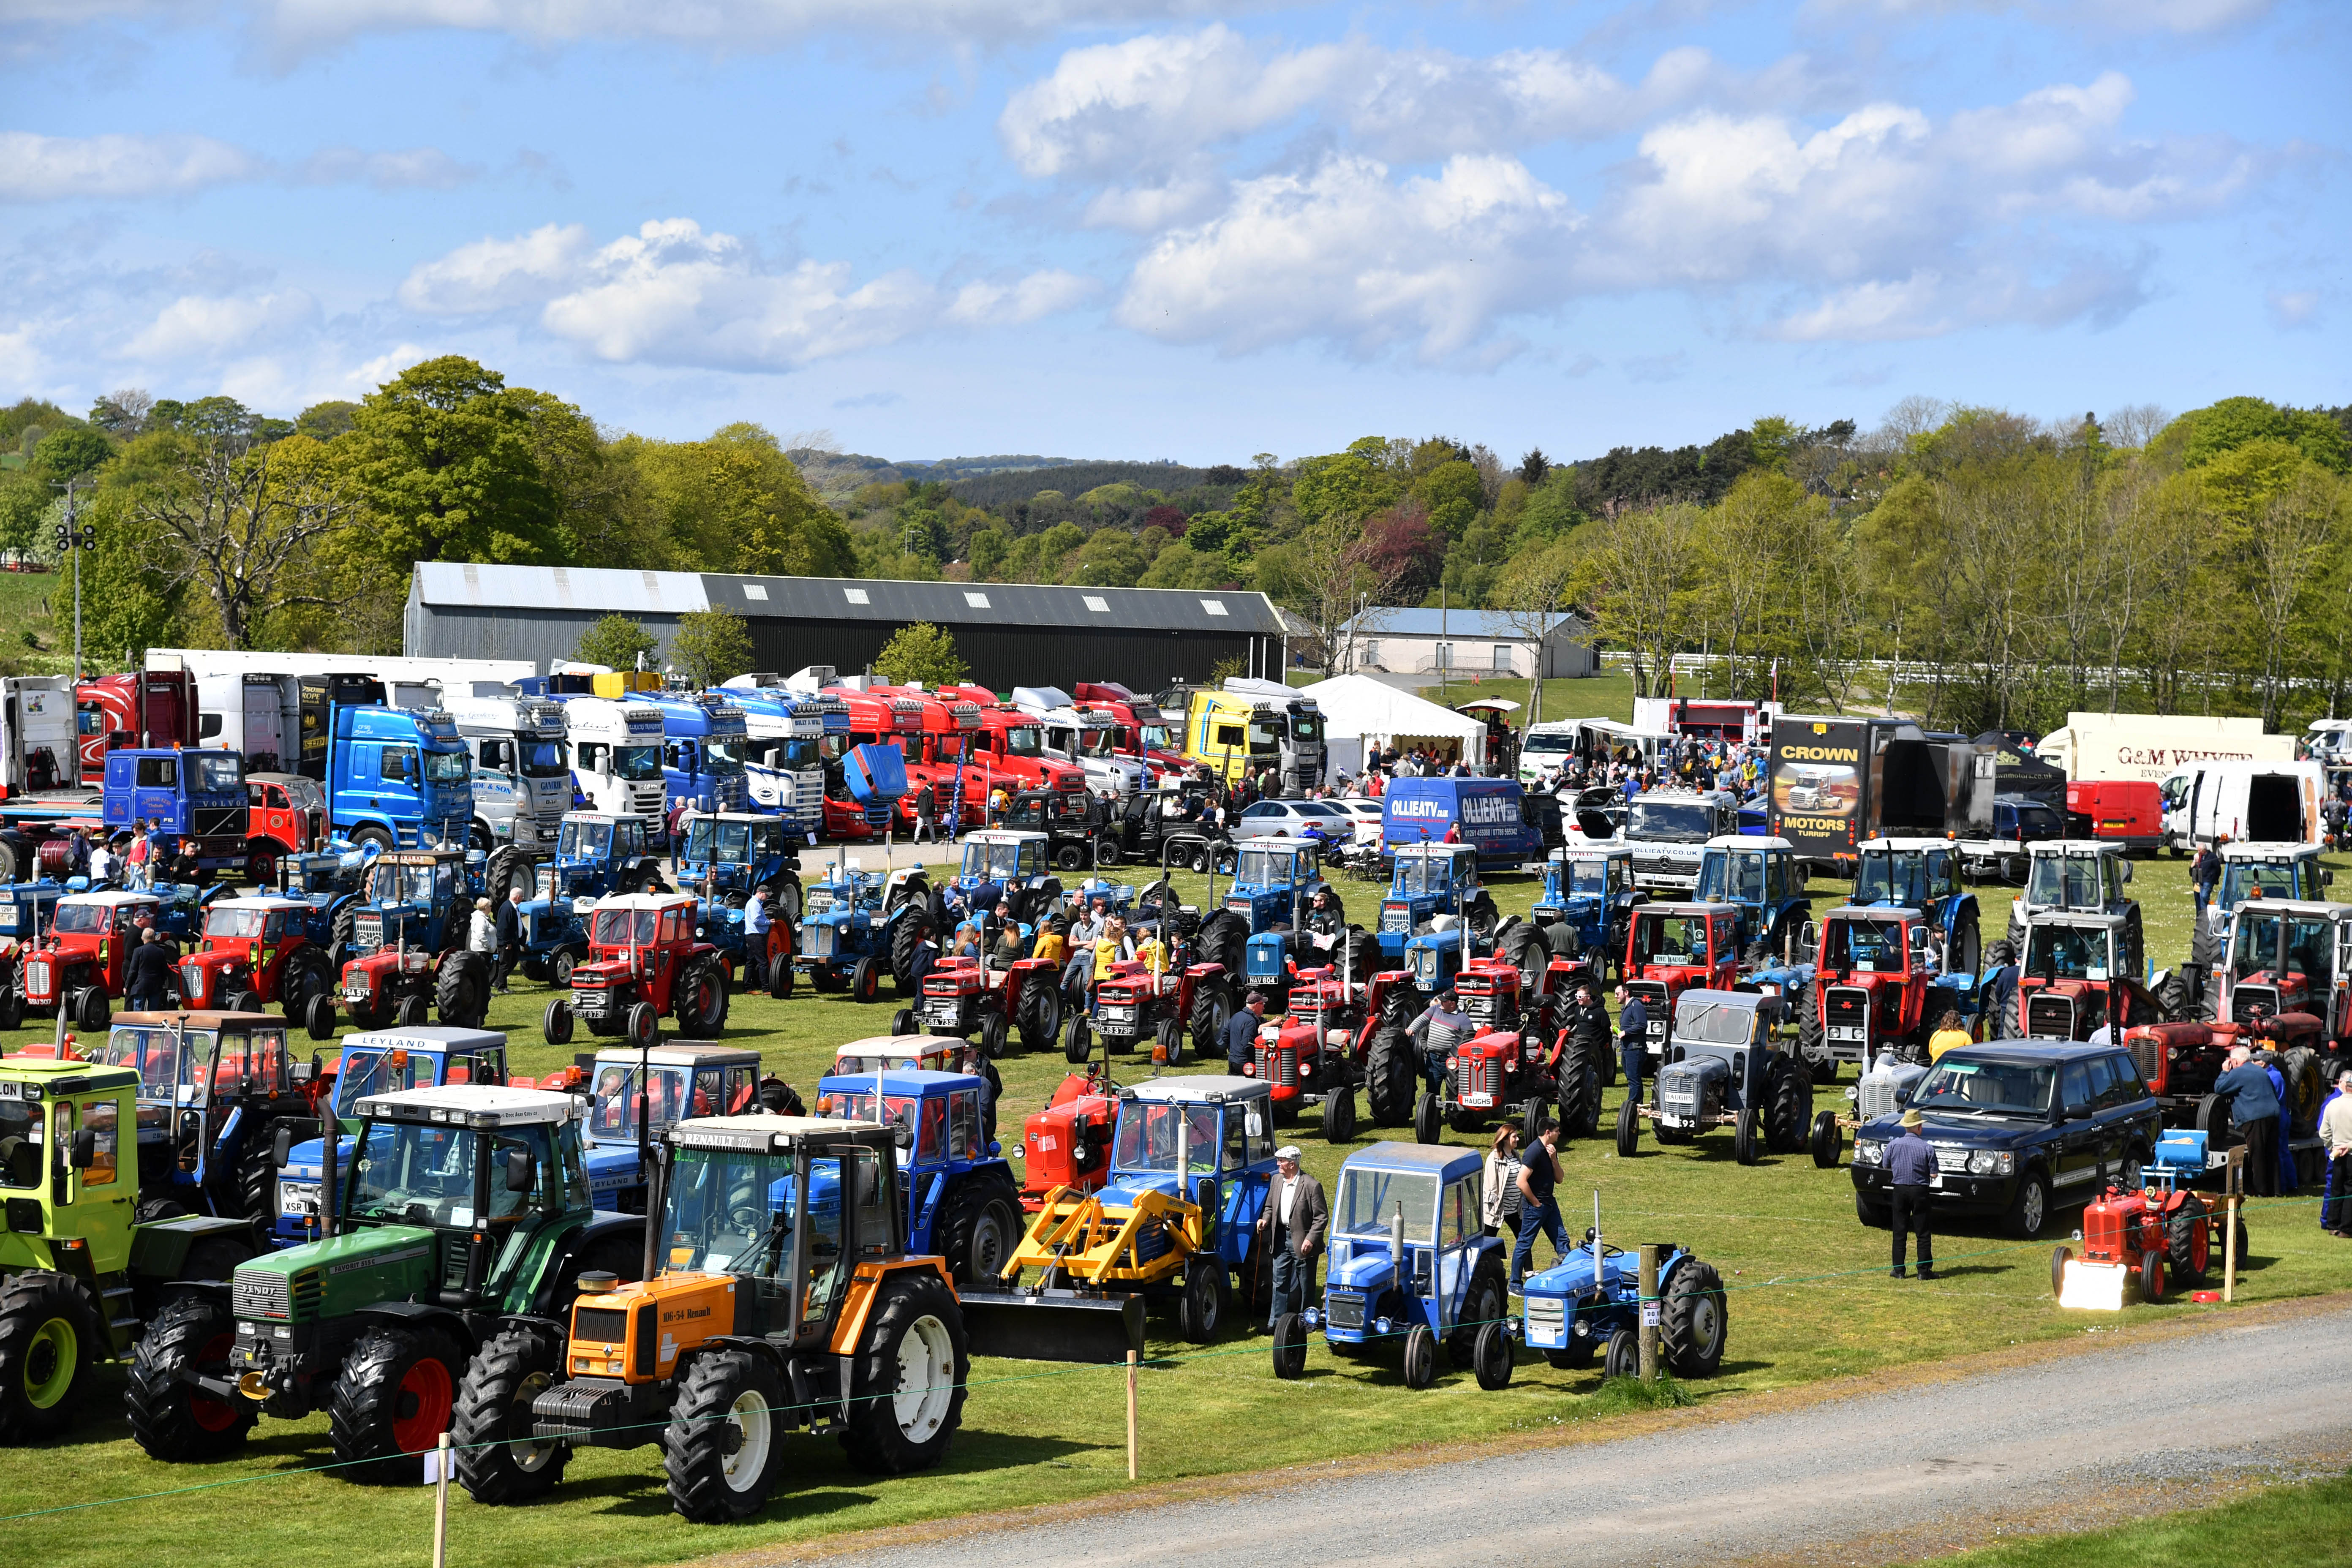 TURRIFF VINTAGE CAR AND VEHICLE RALLY.  A LARGE DISPLAY OF VINTAGE TRACTORS AT TURRIFF.